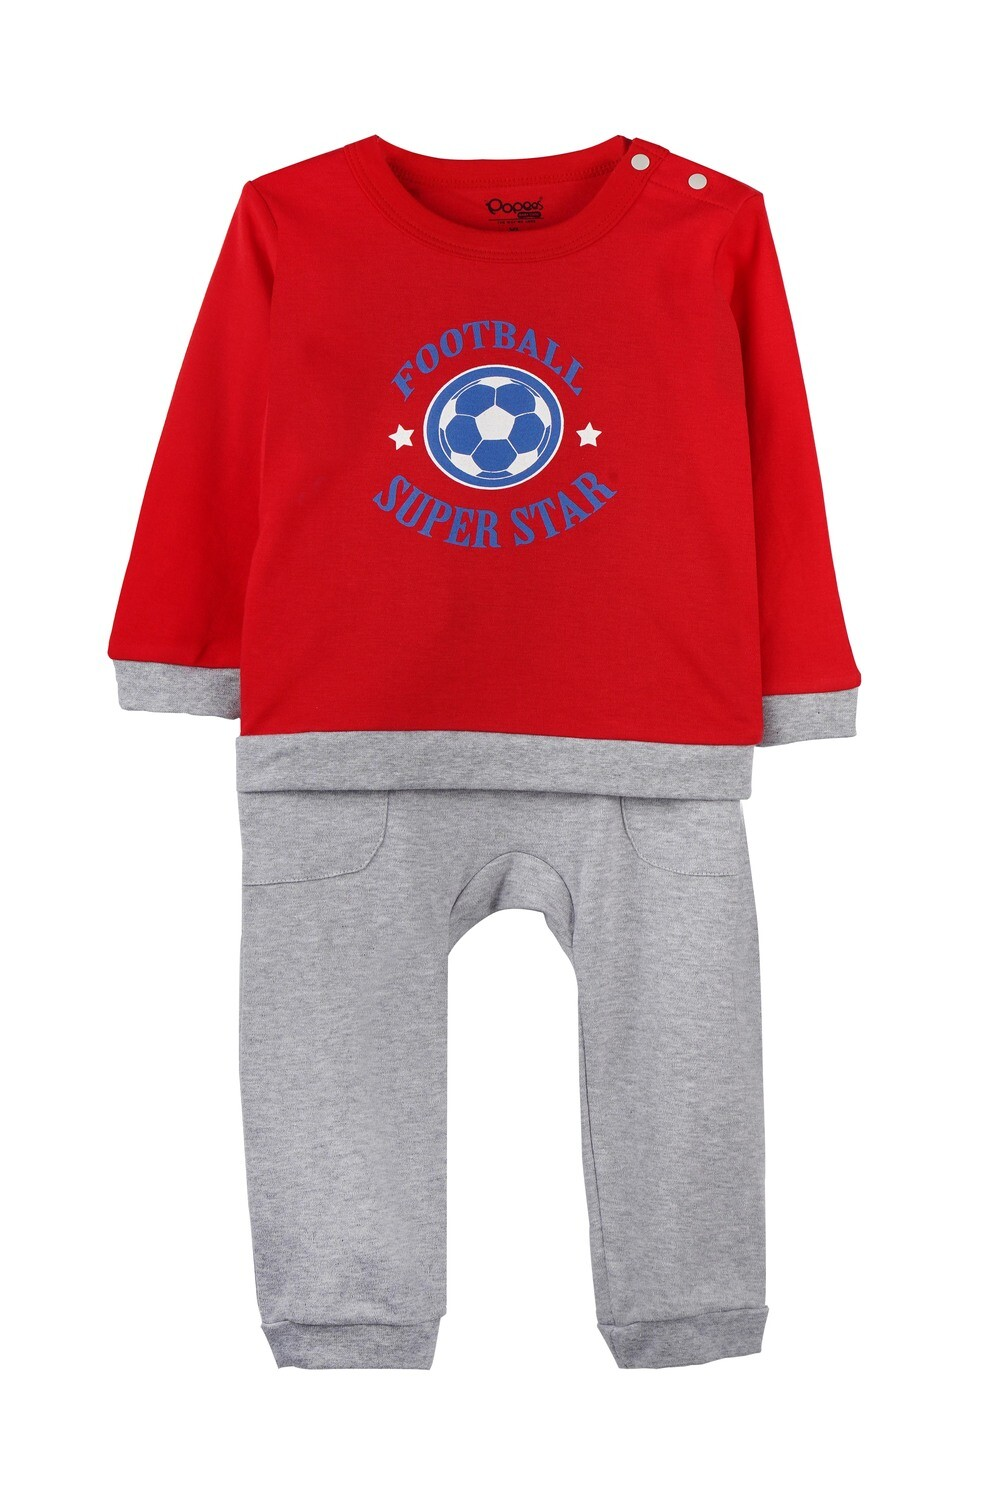 KIRTON True Red Full Sleeve Shoulder Open Top and Pant for Baby Boys